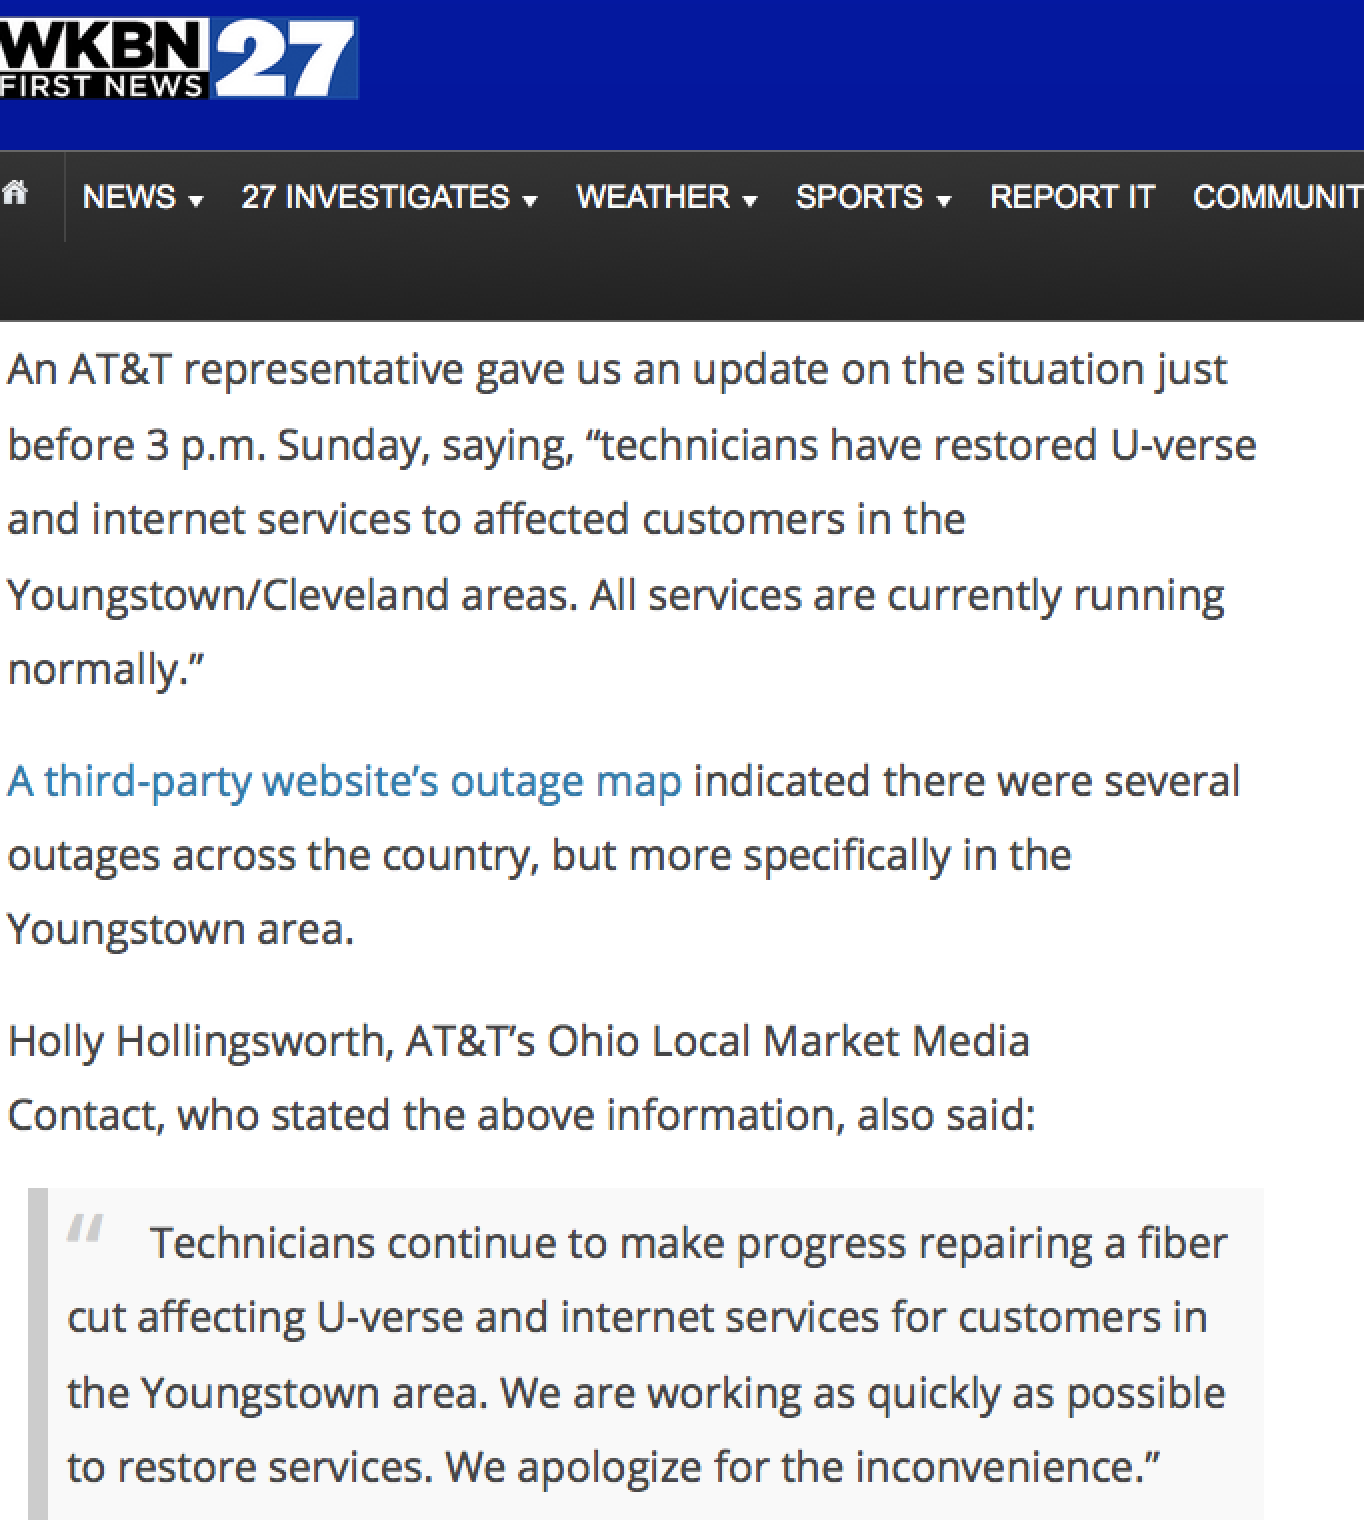 Common Sense Journalism: AT&T's massive outage shows how not